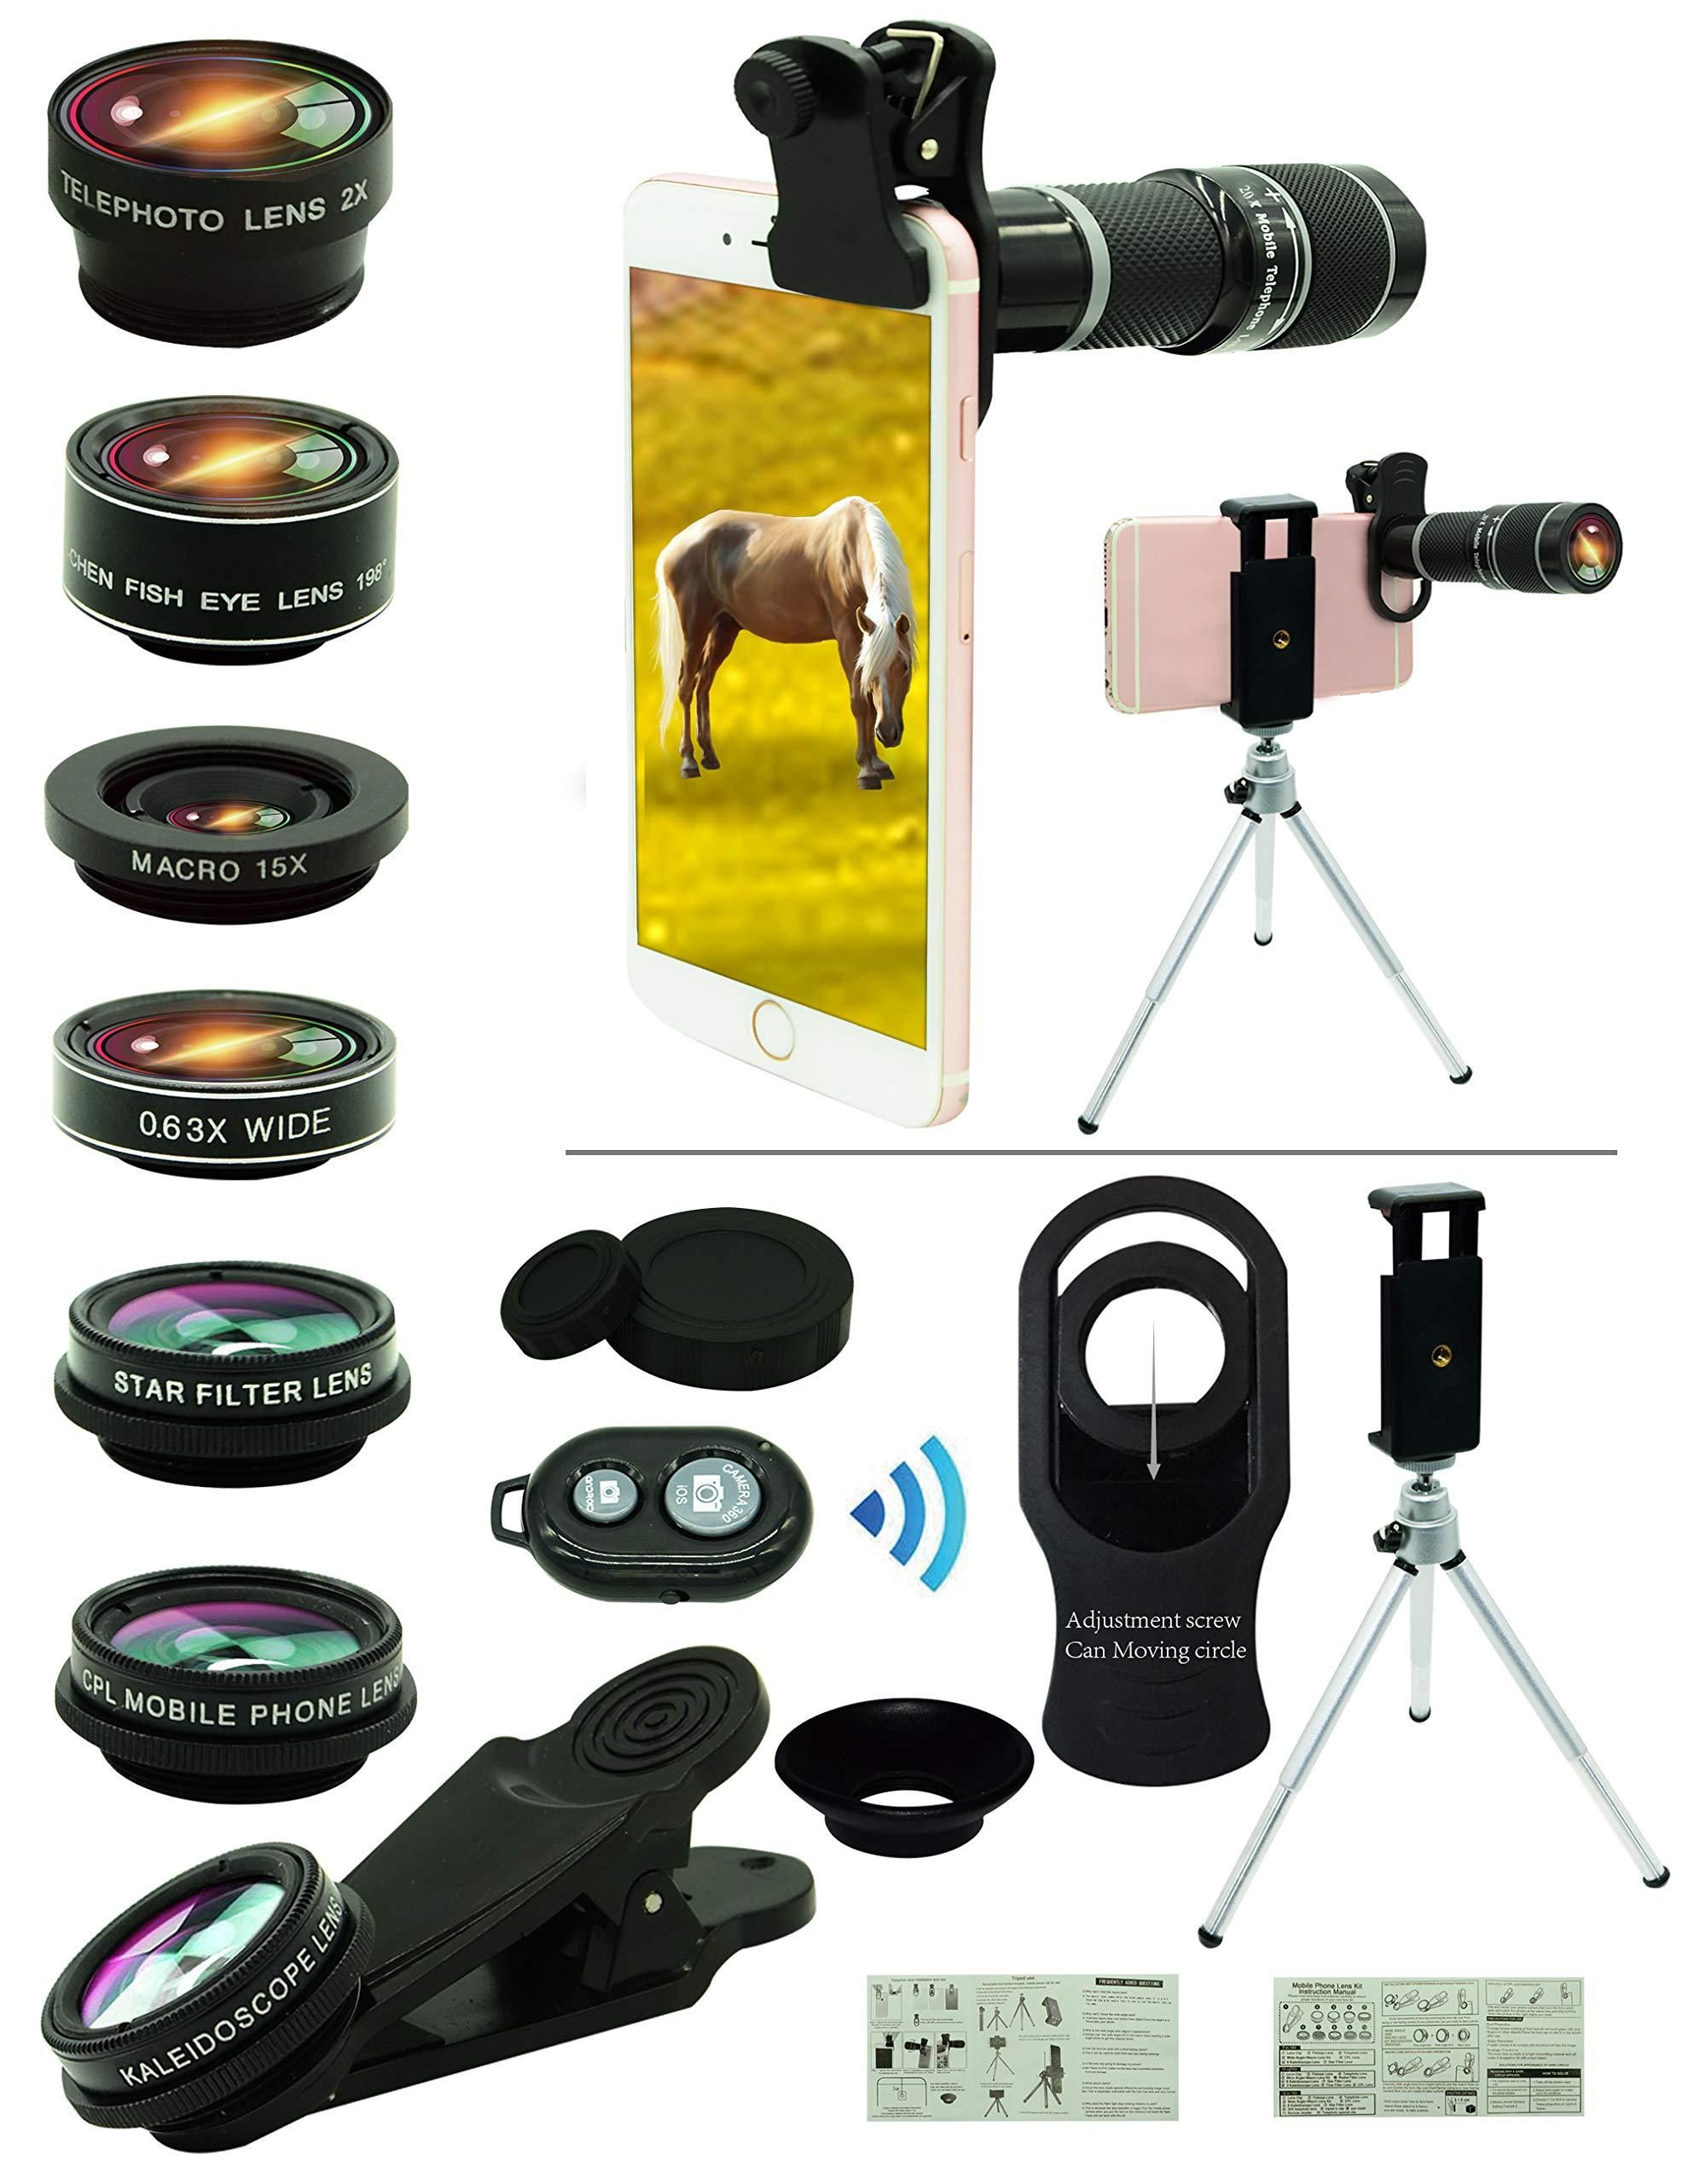 Cell Phone Camera Lens Kit,11 in 1 Universal 20x Zoom Telephoto Lens ,0.63 Wide Angle for Smartphone #wideangle